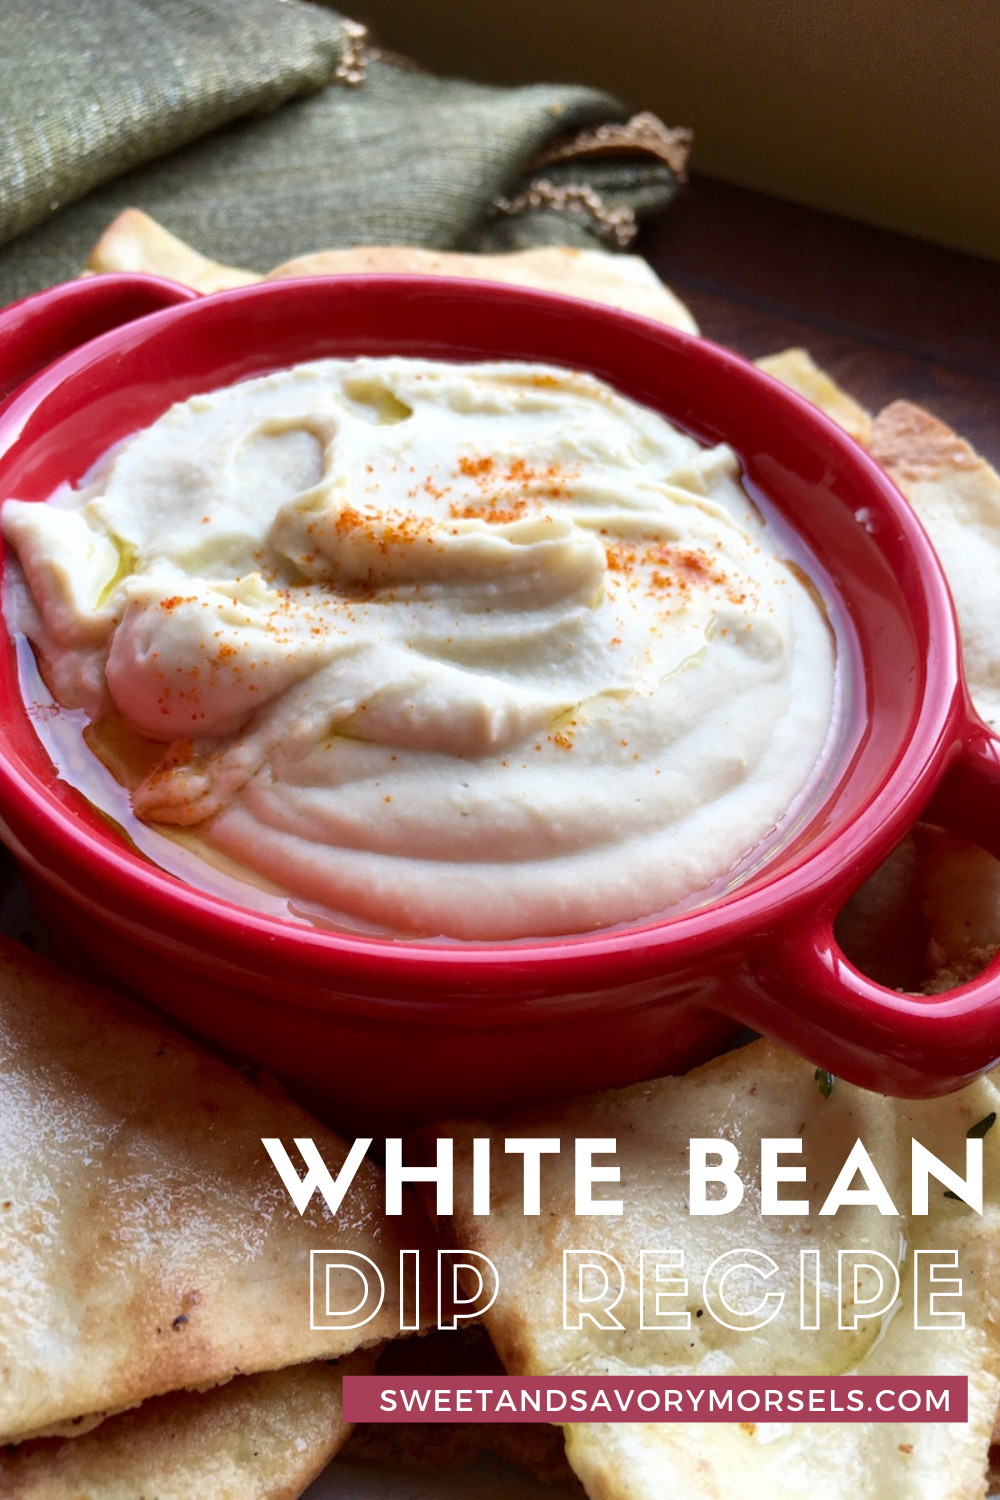 This smooth and creamy White Bean Dip calls for just a few simple ingredients, and it is ready in just 10 minutes! It's a deliciously healthy vegan dip perfect for snacking or for serving at parties!